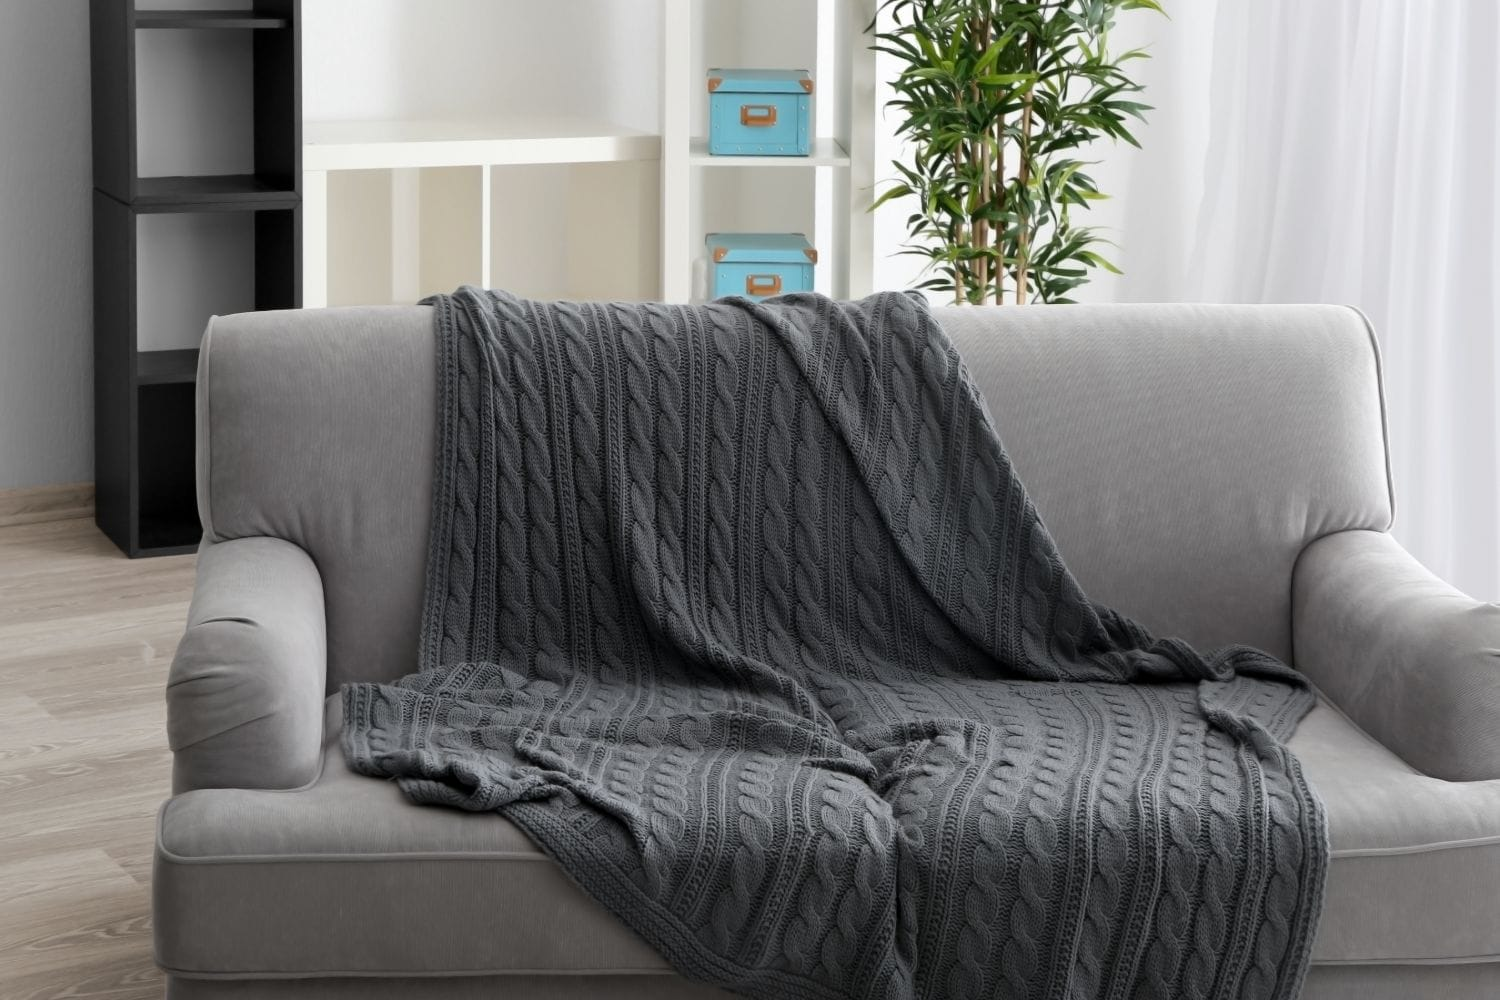 Best Throw Blankets For Couches And Beds 2020 - SwankyDen.com